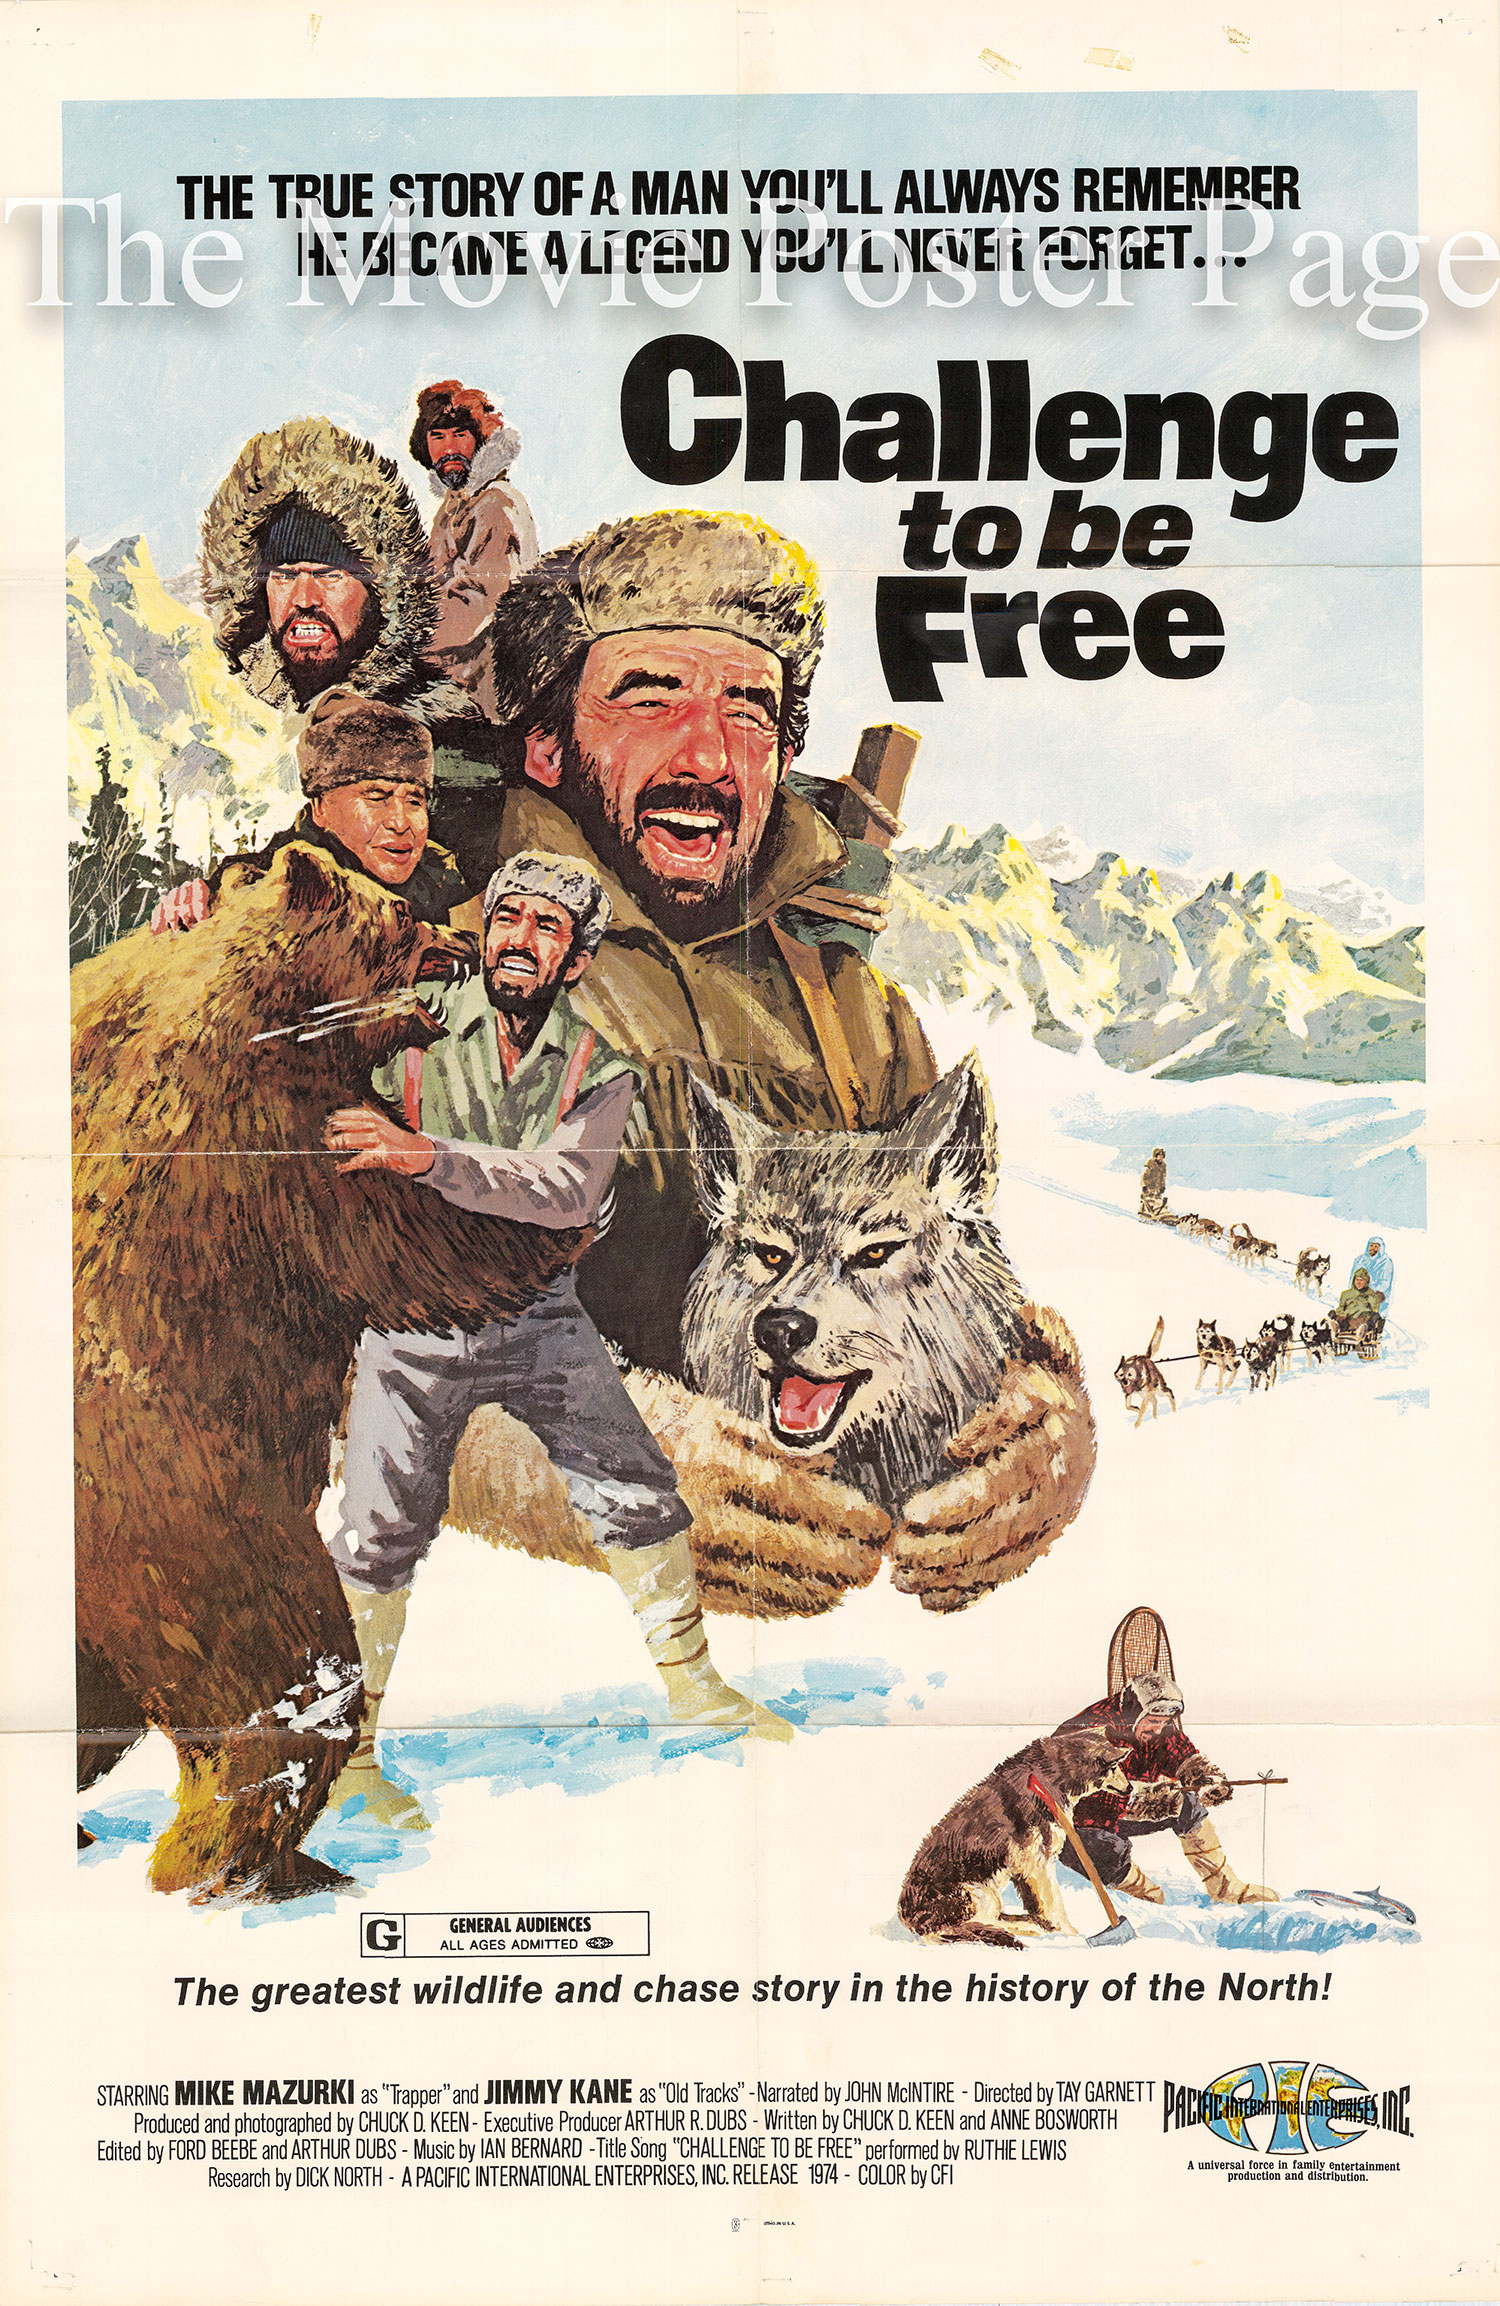 Pictured is a US one-sheet promotional poster for the 1974 Tay Garnett film Challenge to Be Free starring Mike Mazurki.